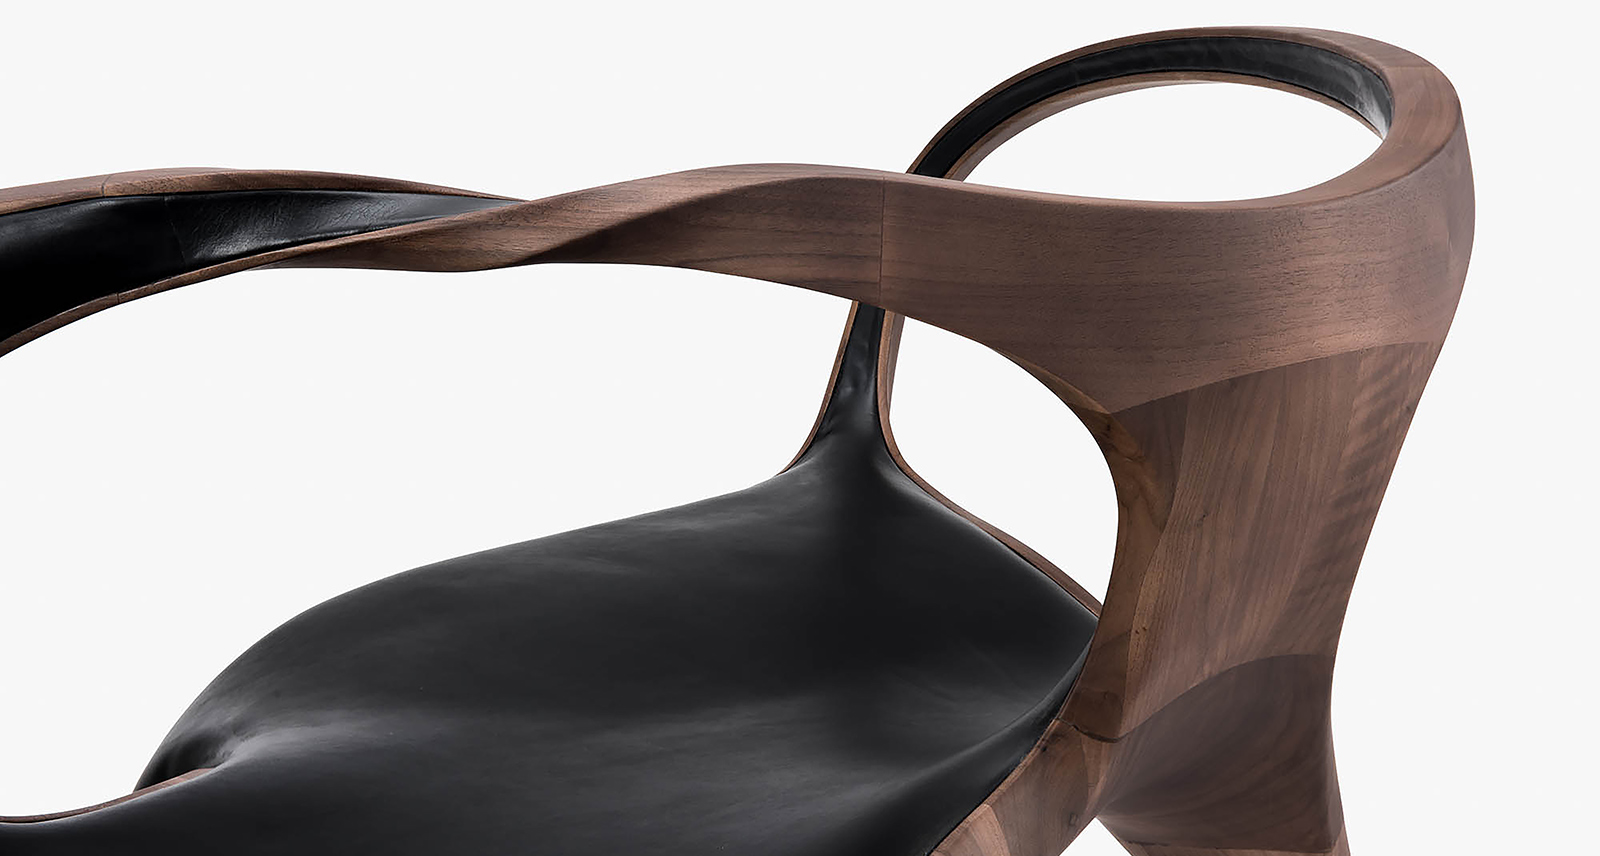 You Need Some of Zaha Hadid's Last Furniture Collection